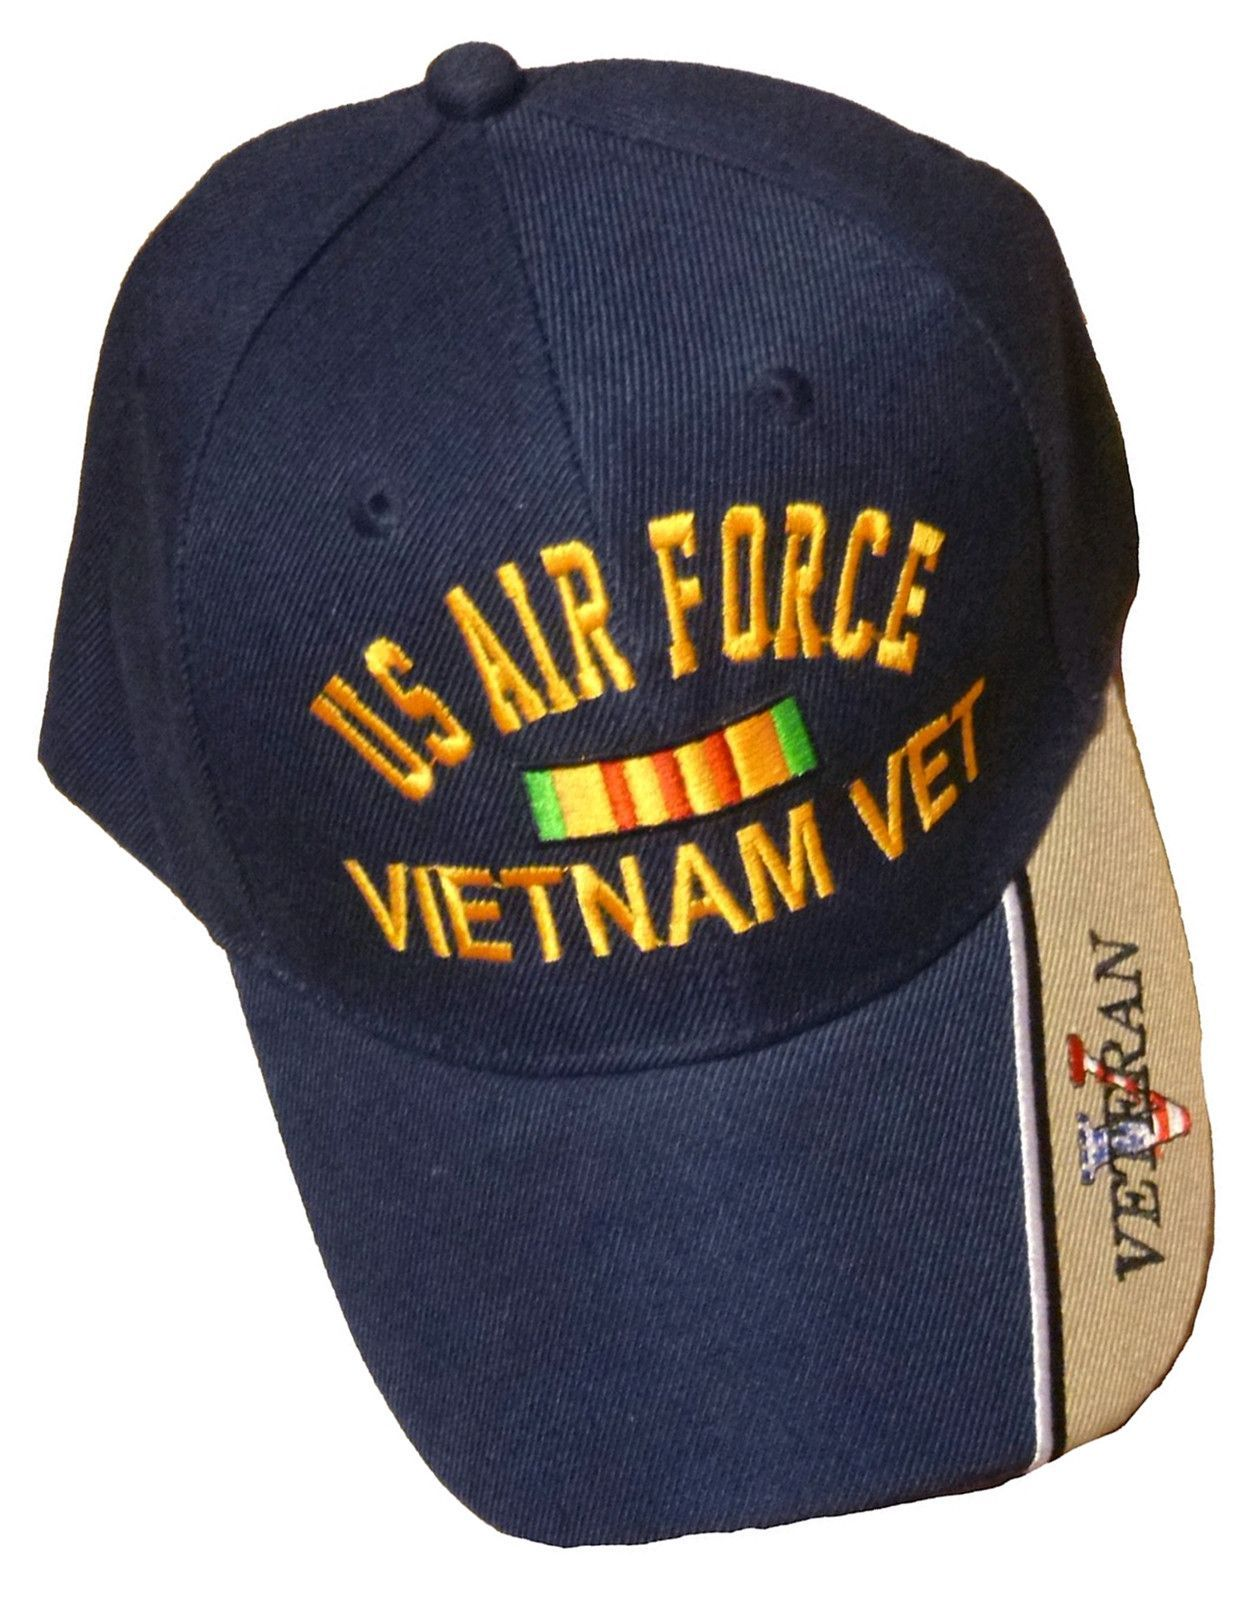 59009c19976 US Air Force Vietnam Vet Baseball Cap Blue and Tan Embroidered Military  Logo Veteran Hat